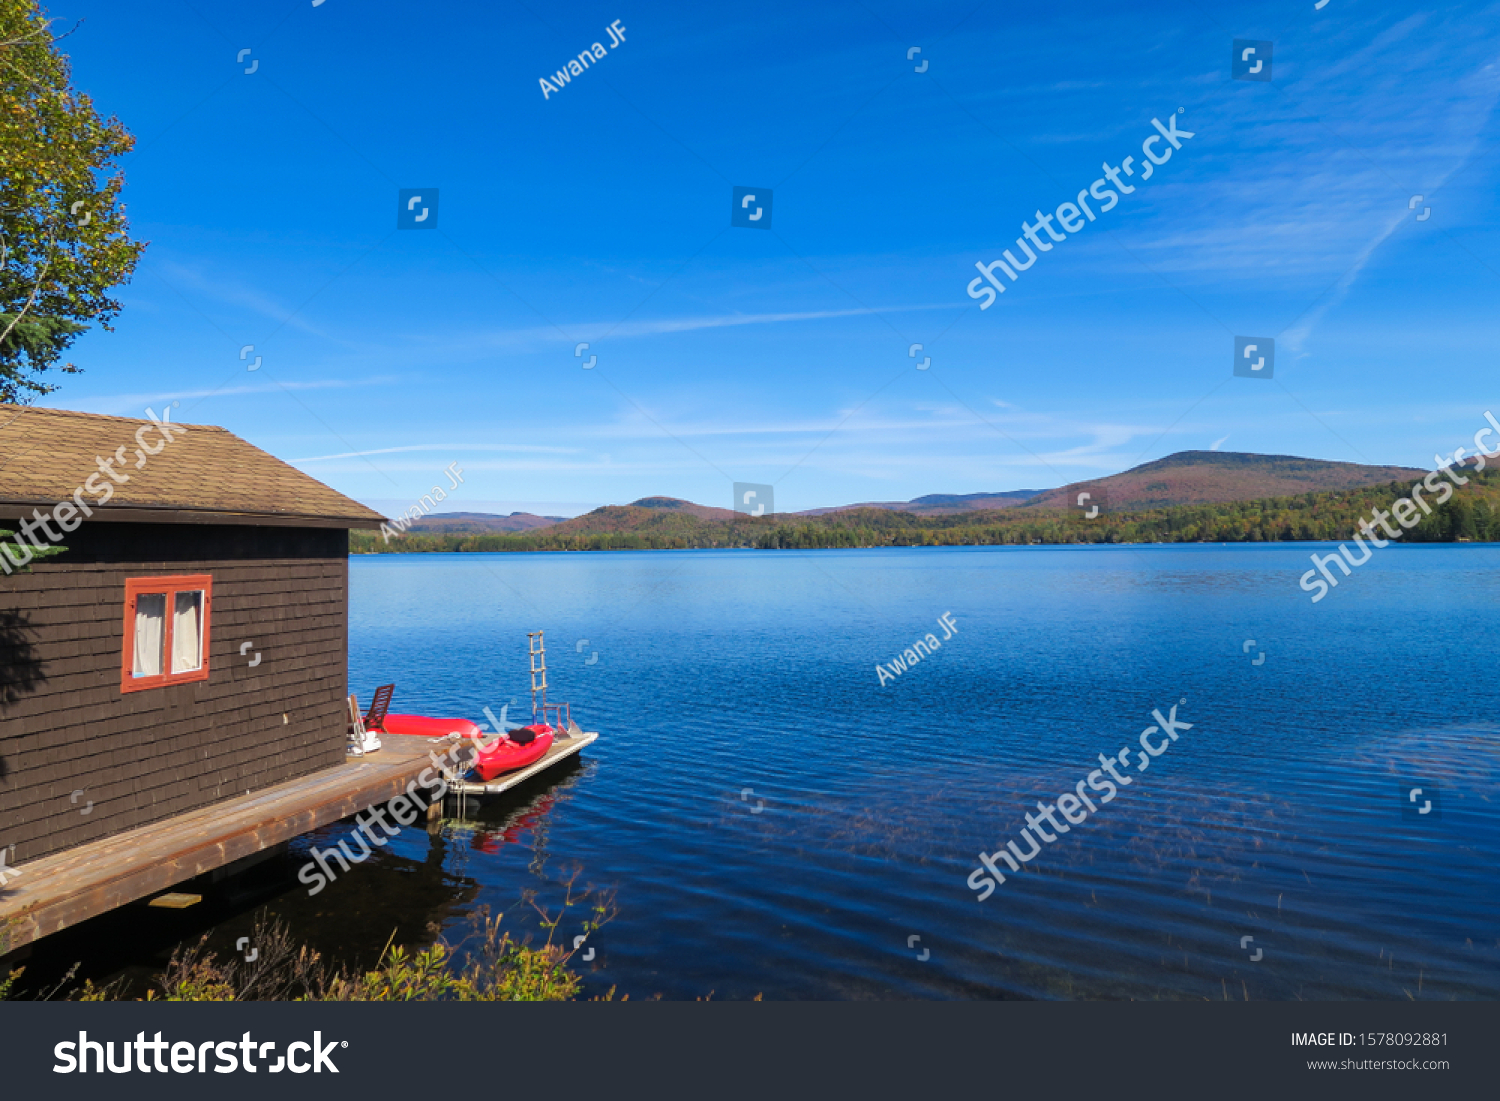 stock-photo-view-of-a-wooden-cottage-by-